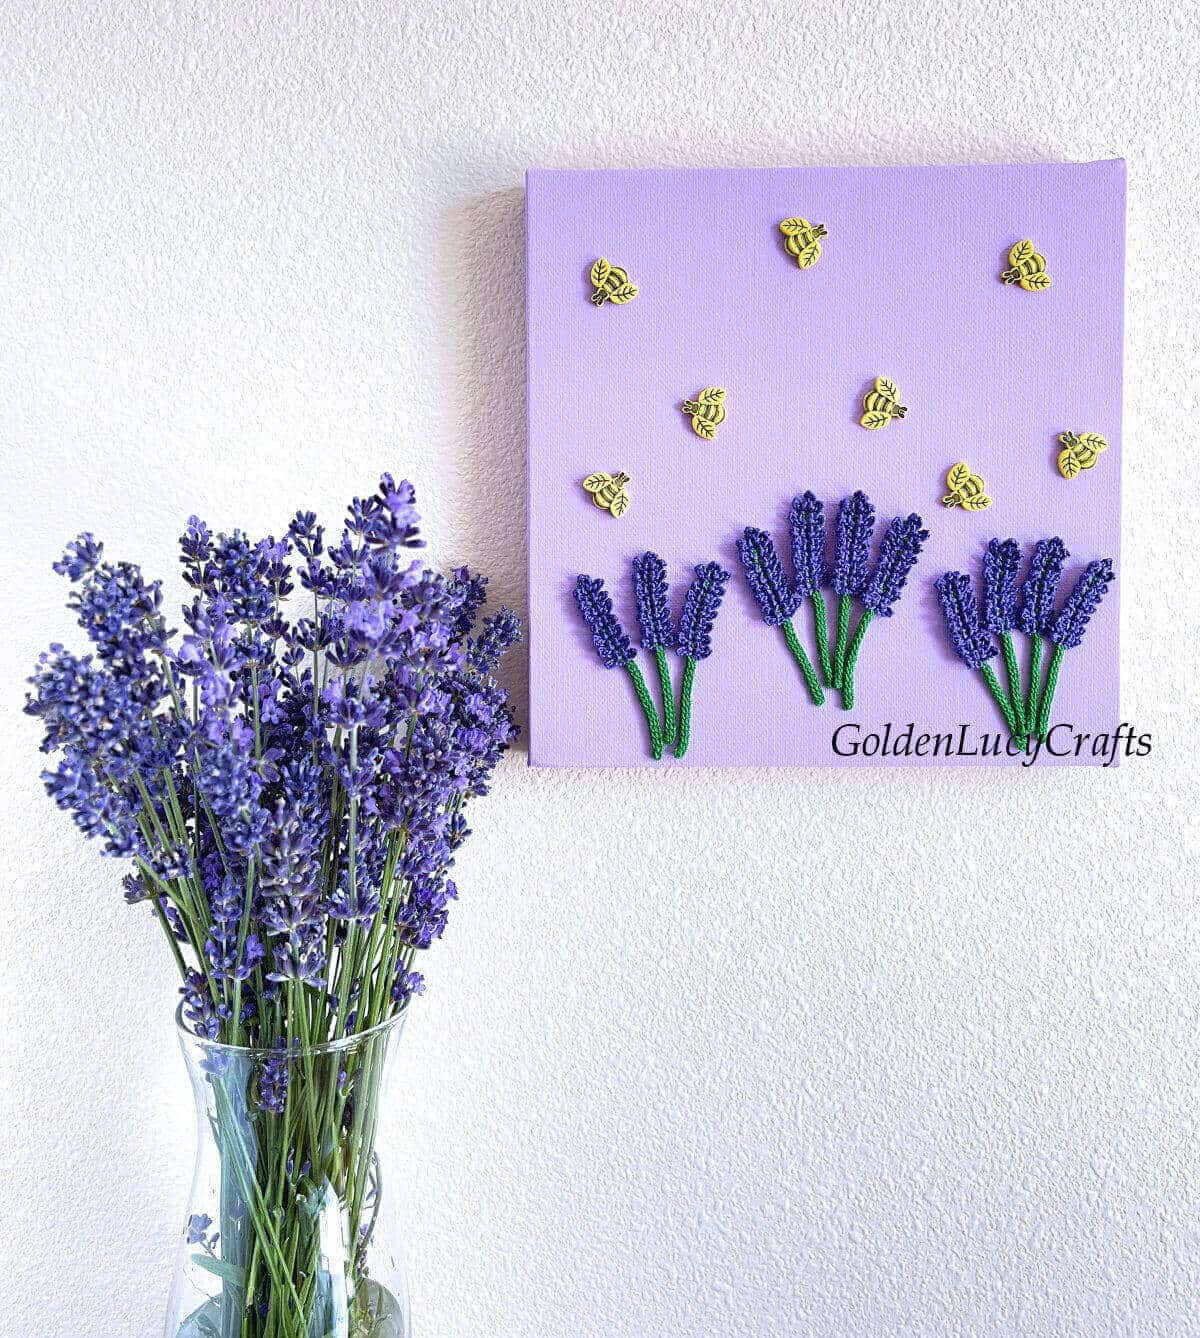 Wall art lavender and bees on the wall, lavender in the vase next to it.